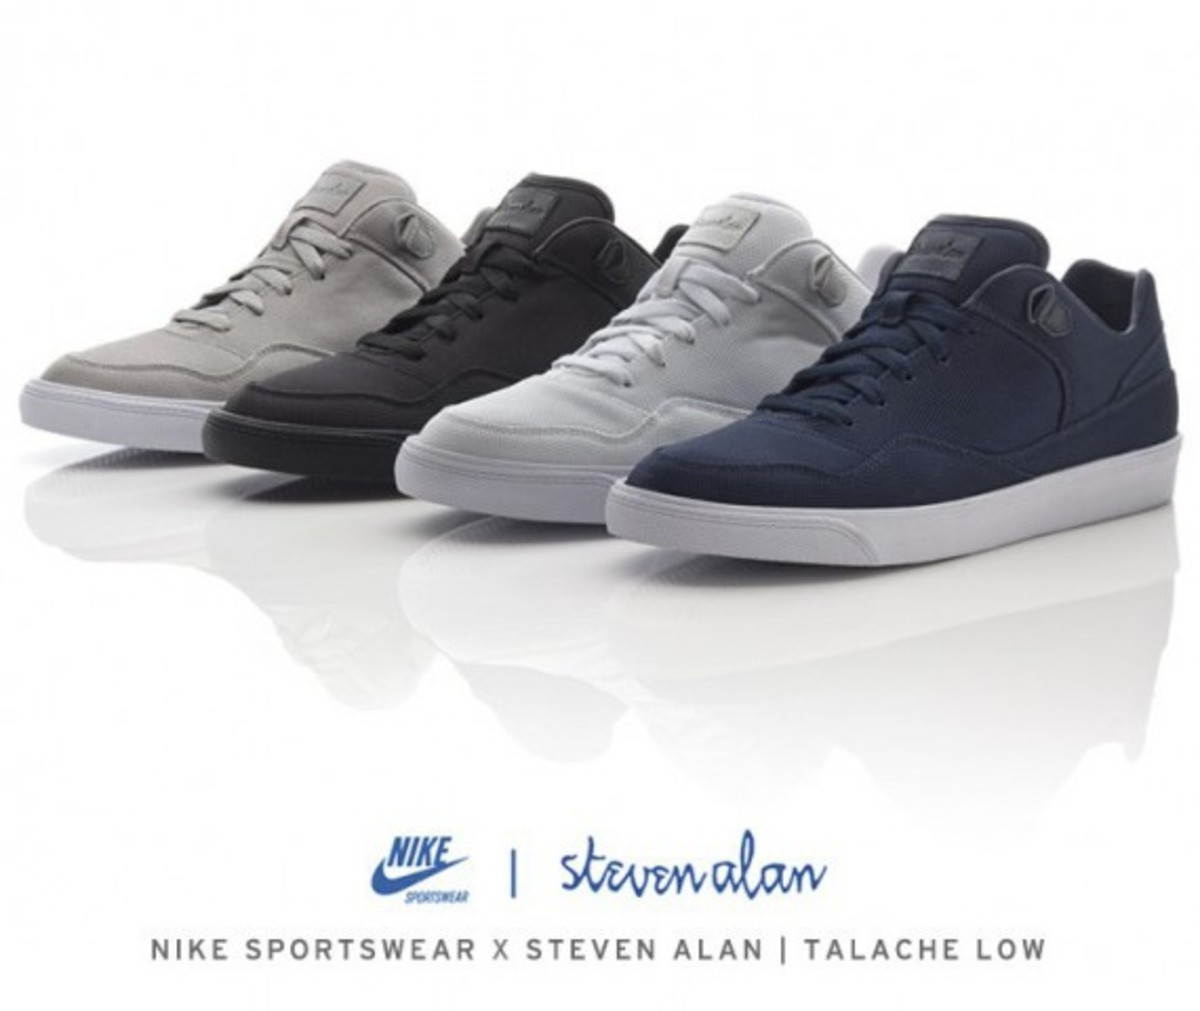 steven-alan-nike-sportswear-air-zoom-talachie-low-02